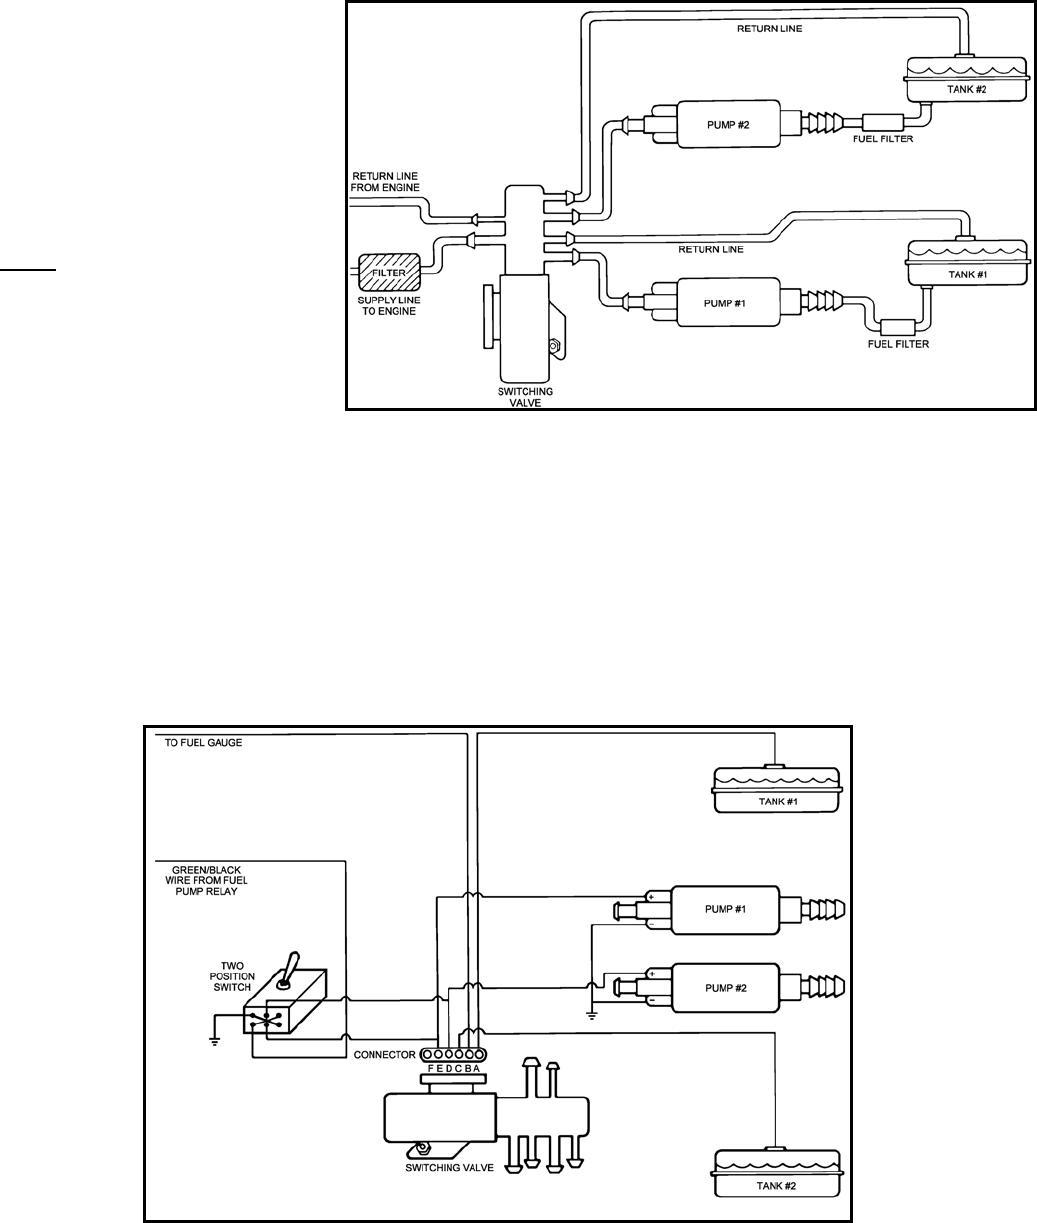 Holley Pro Jection Wiring Diagram Schematics Tbi 4 Explained Diagrams 2d Tps